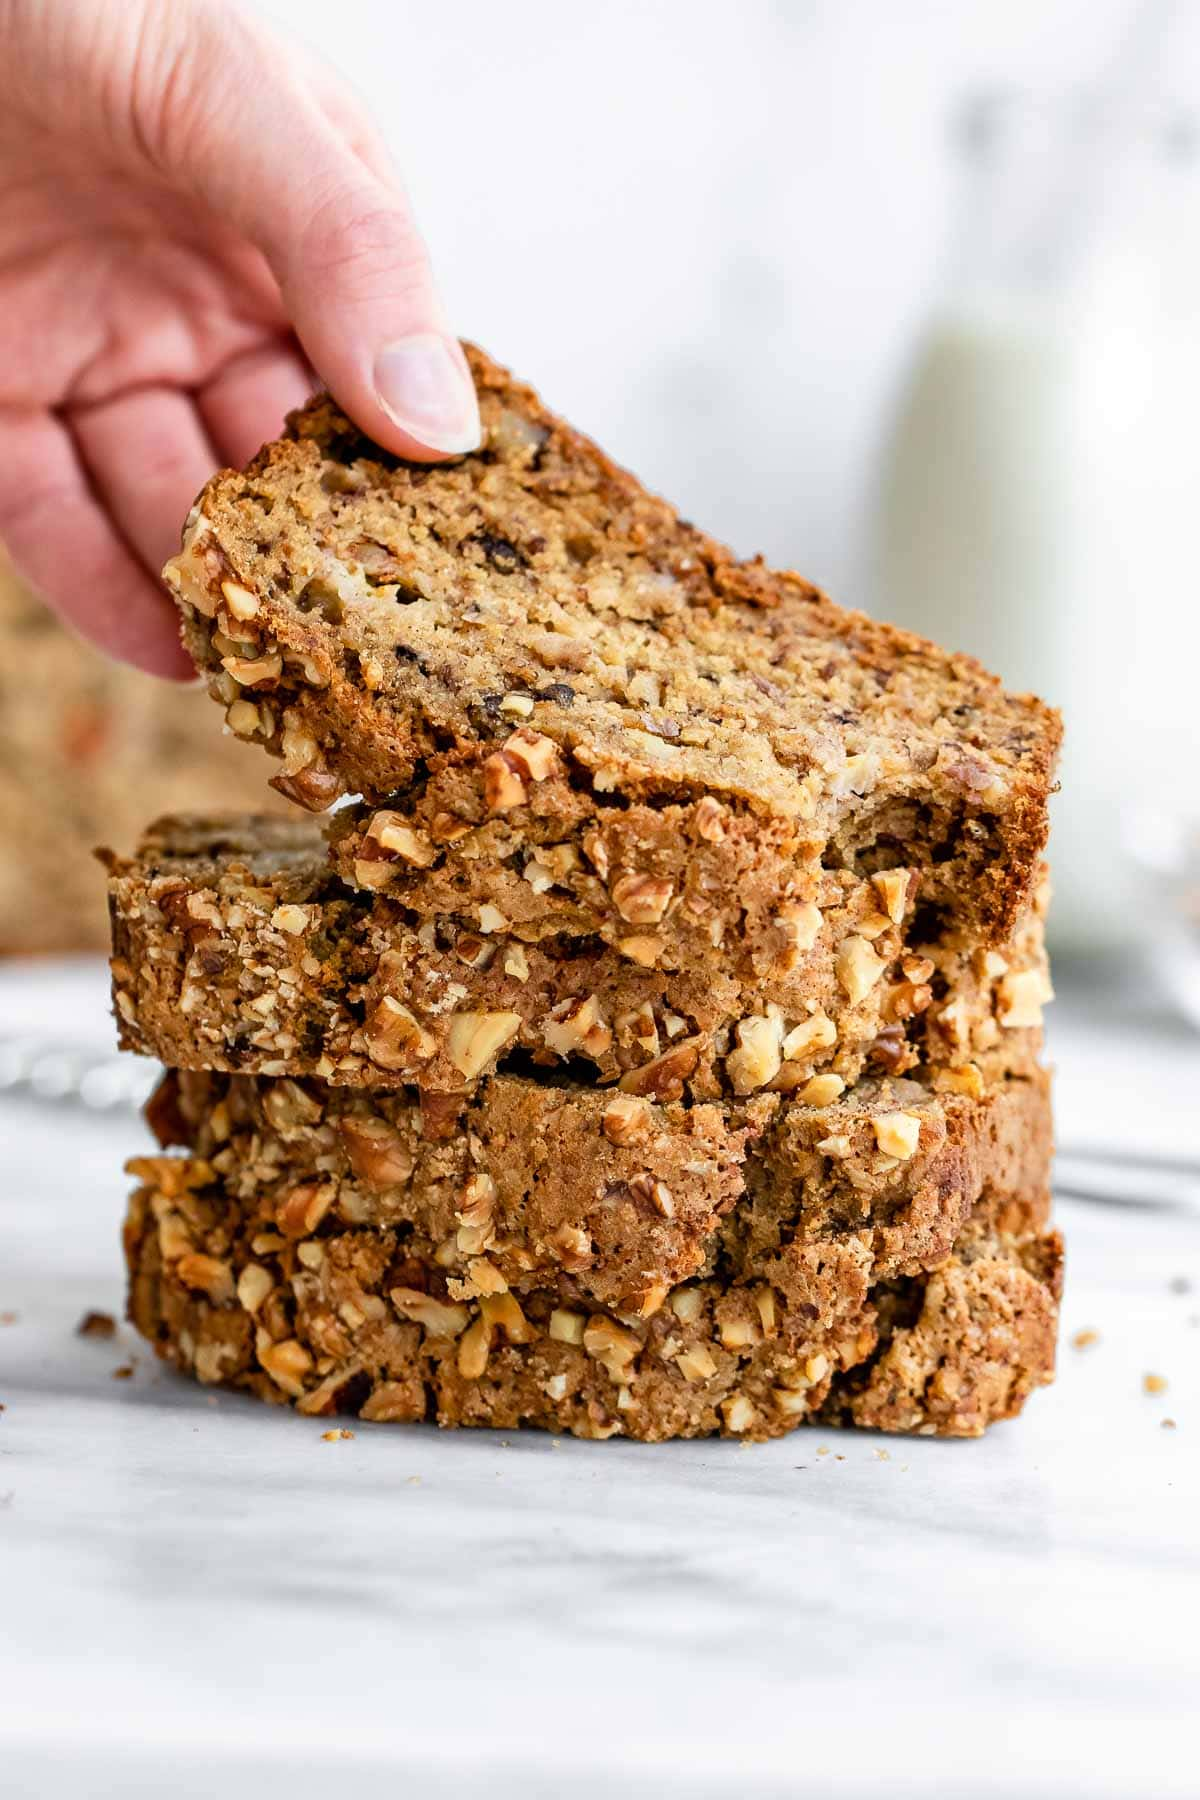 Stack of banana bread slices with a hand picking a top one.